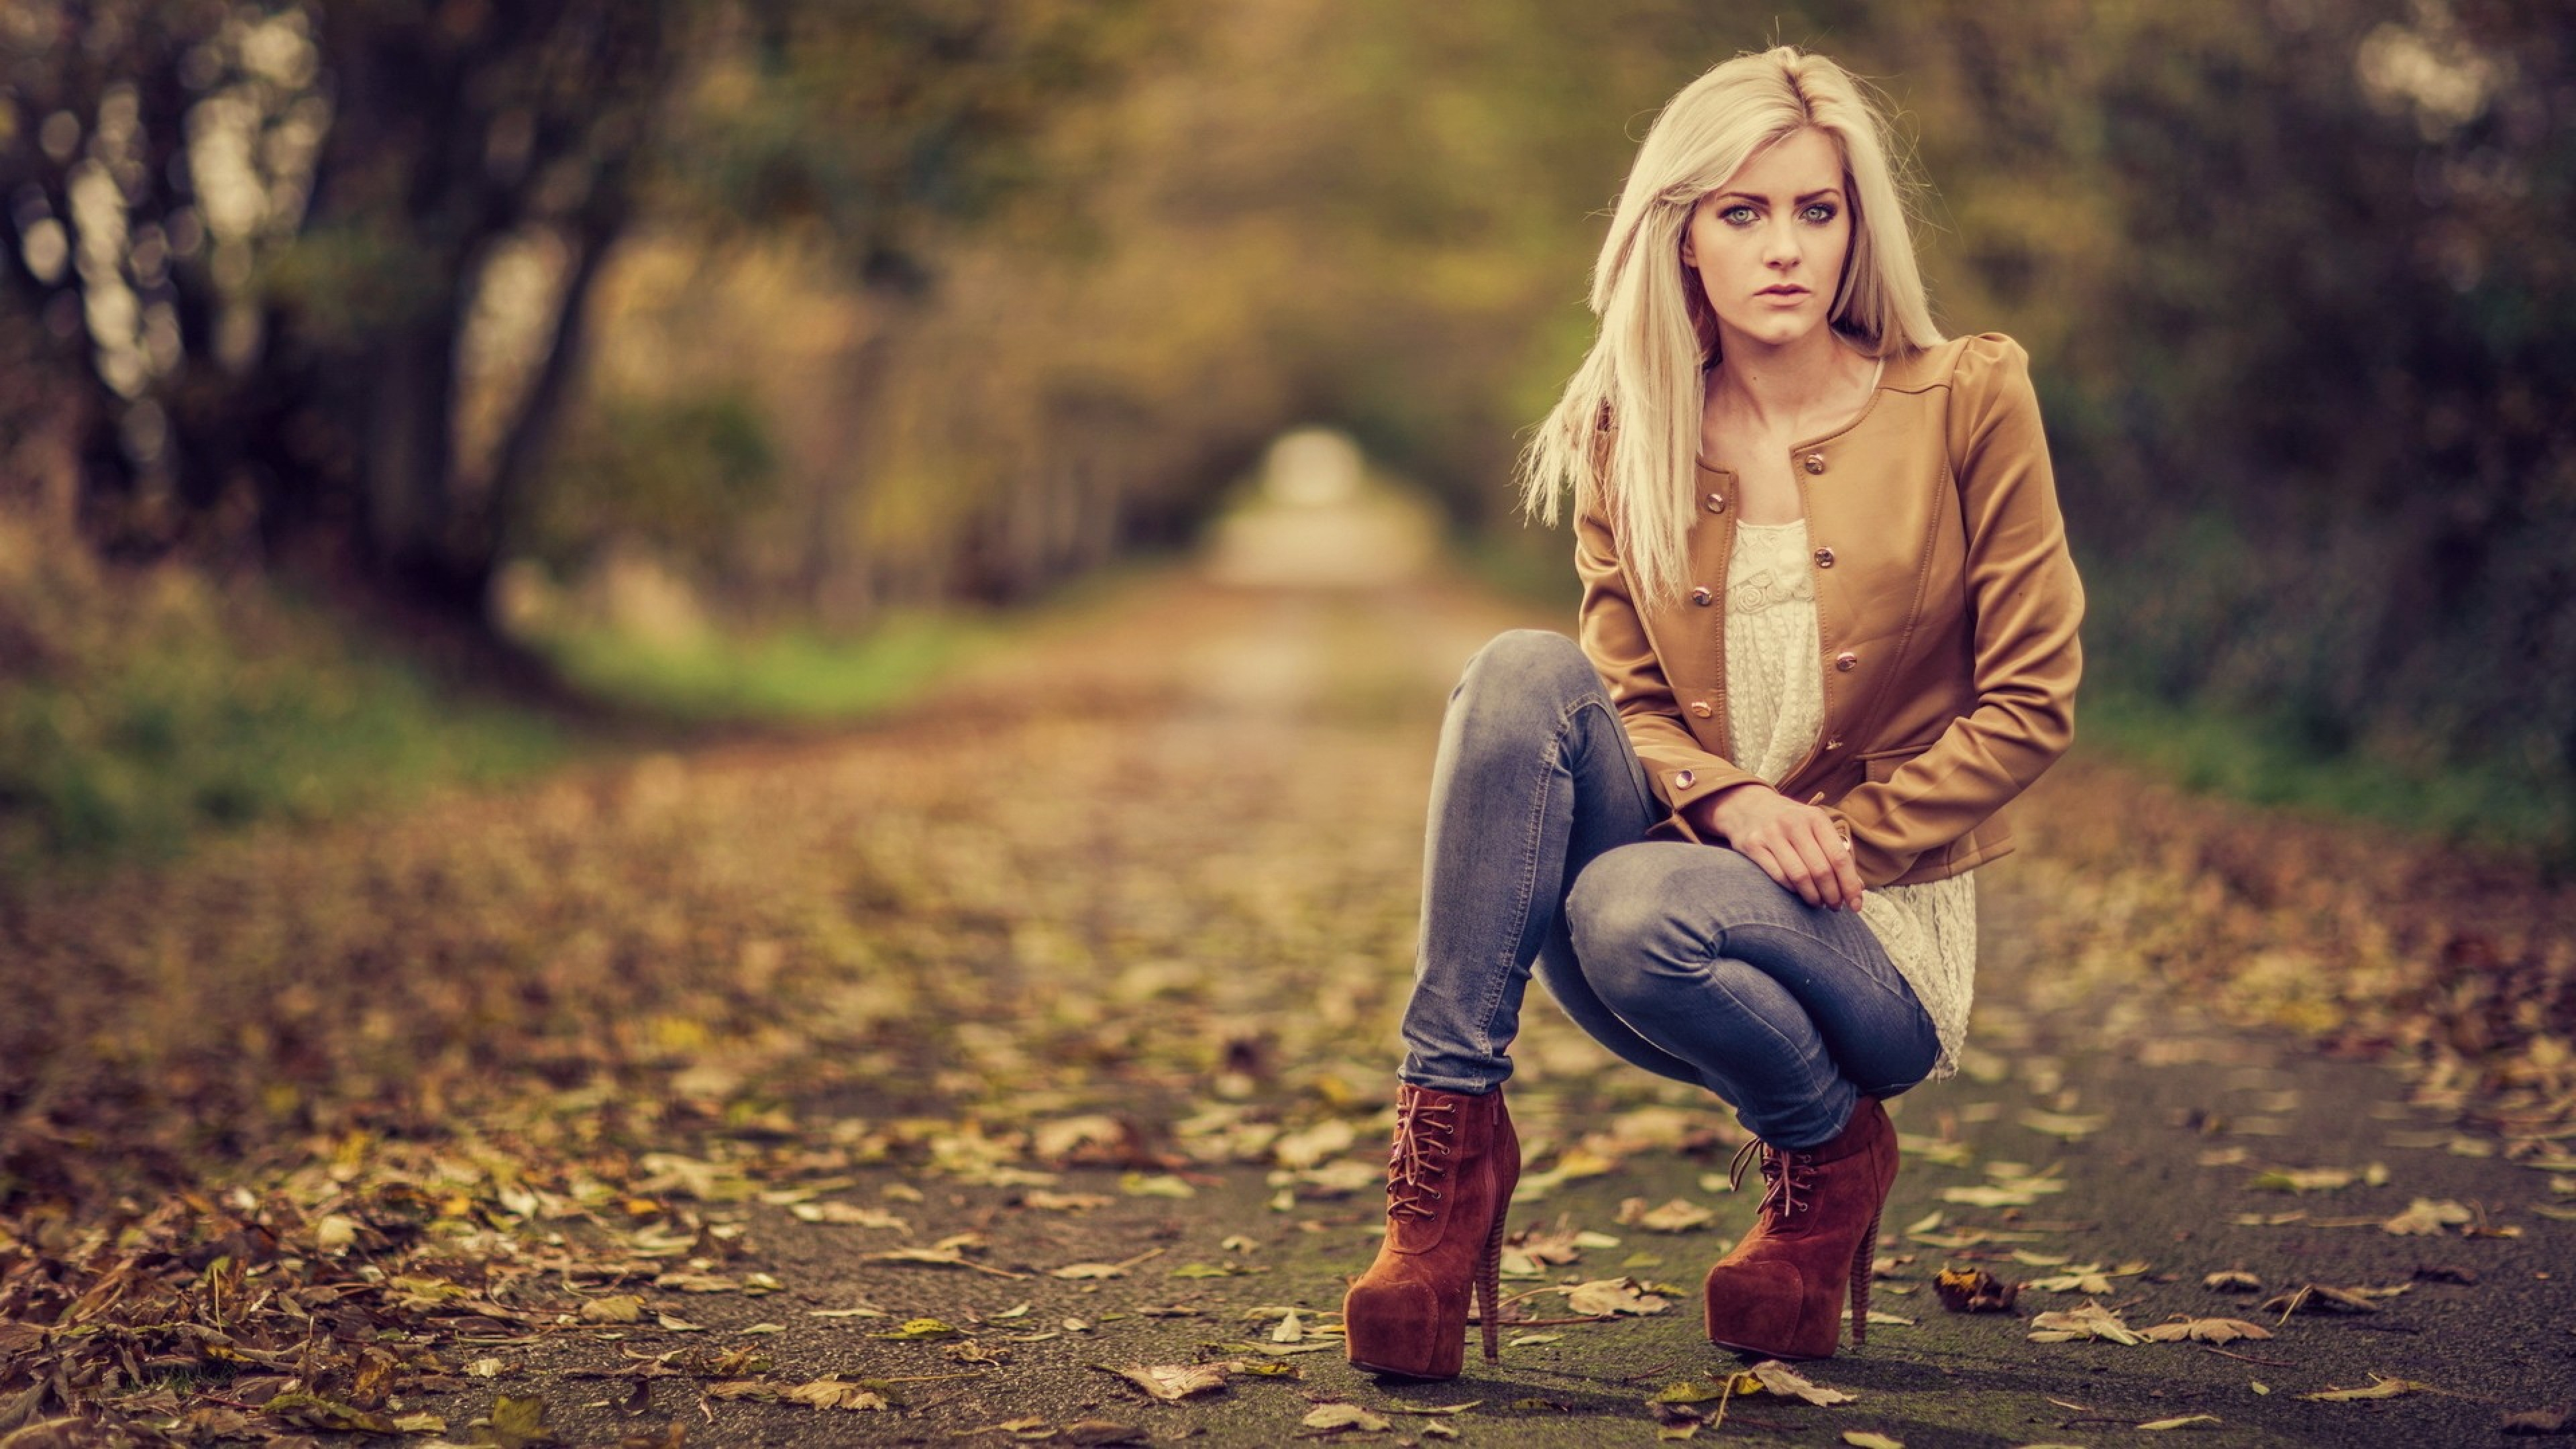 3840x2160 Wallpaper girl, autumn, leaves, model, photo shoot